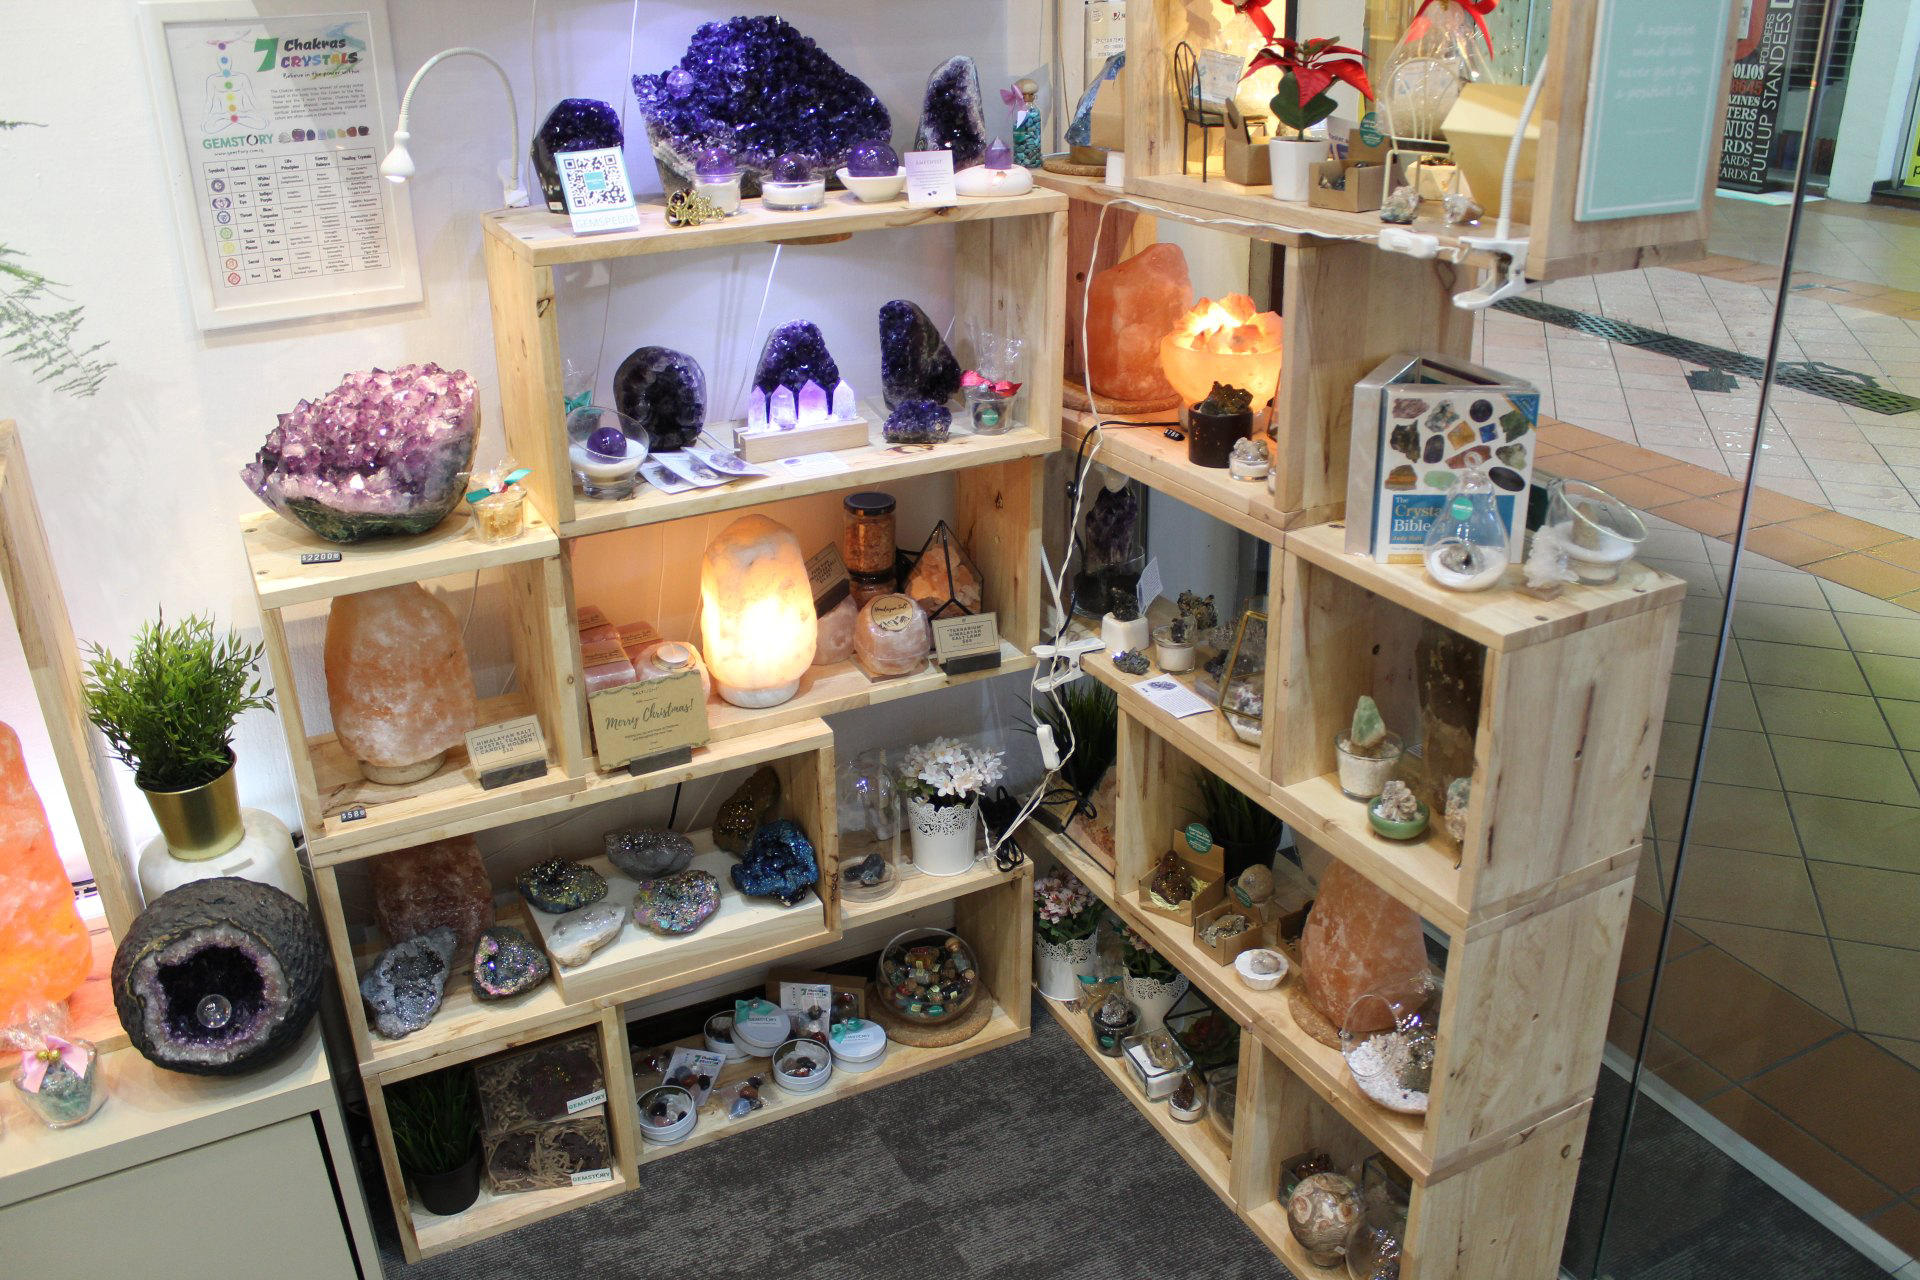 Another corner of the Gemstory shop